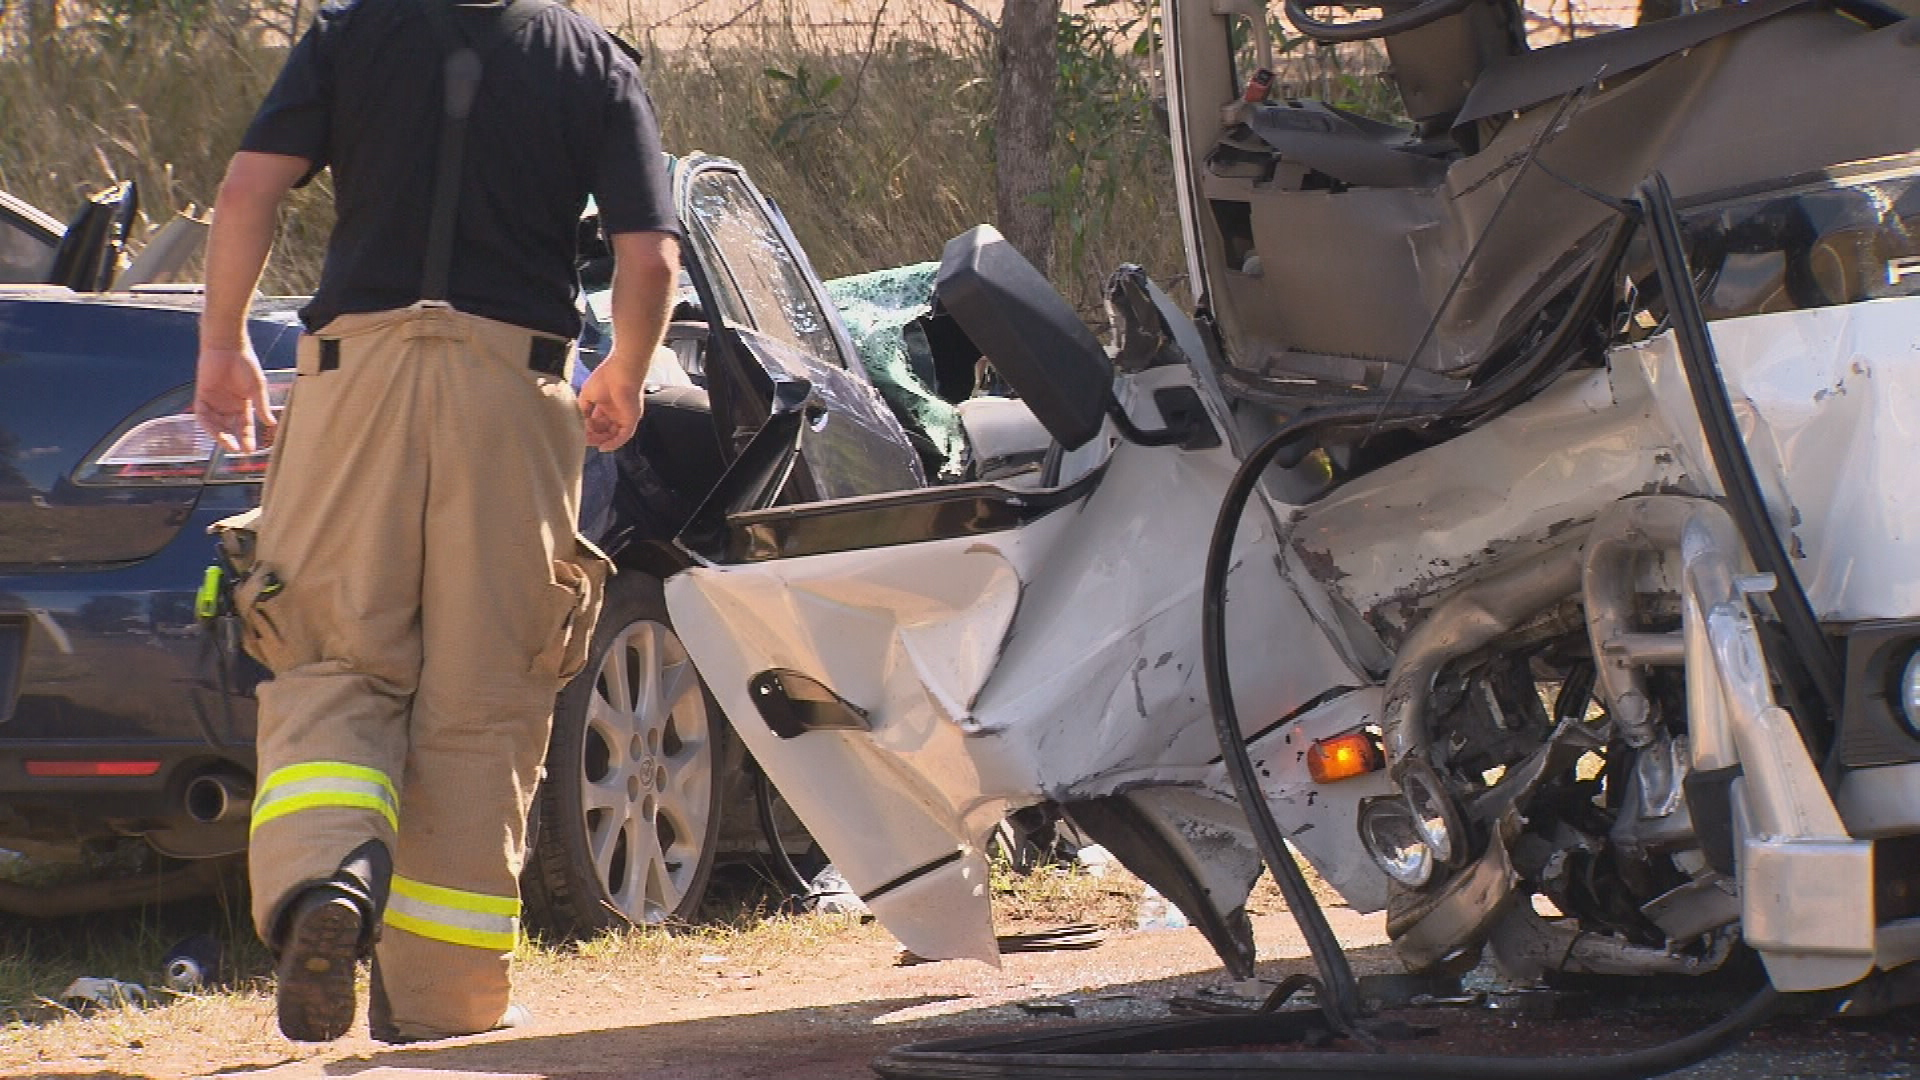 A Queensland Ambulance Officer said it was remarkable no one died in the head-on crash.